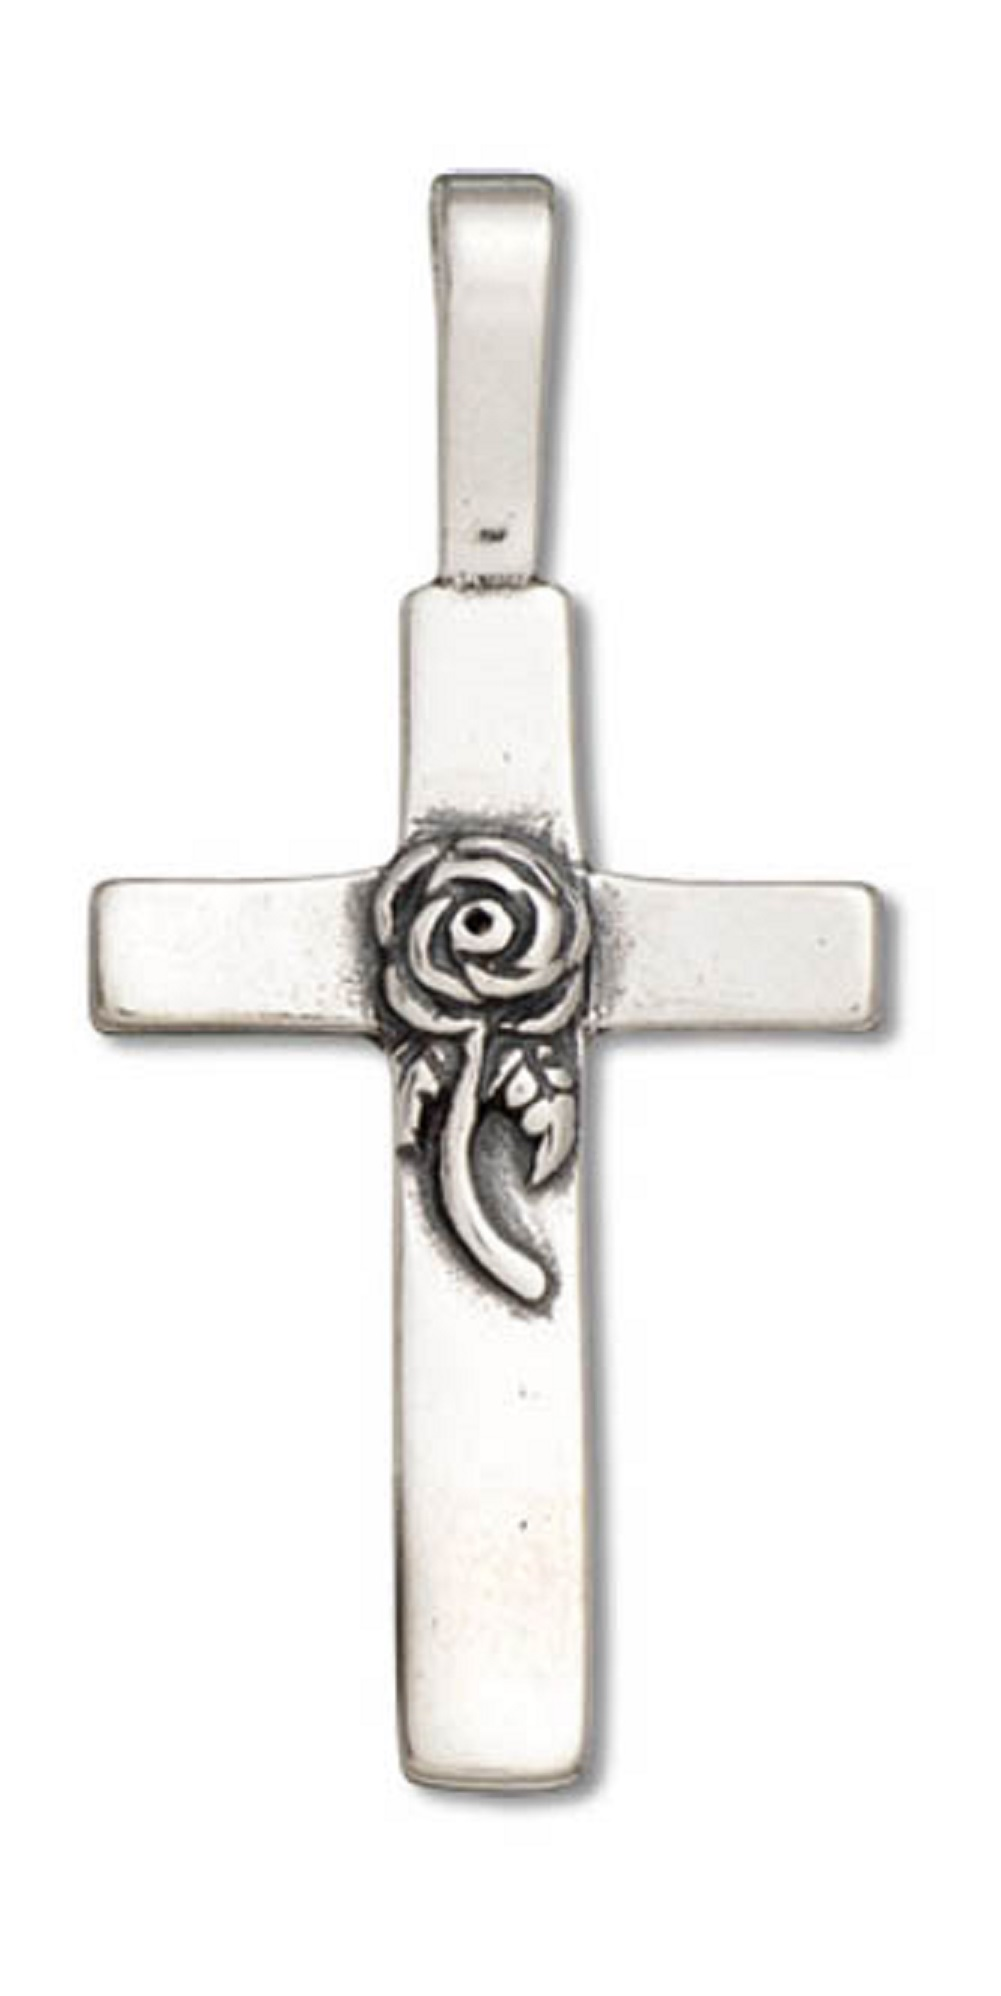 Pack of 80 Cross Charms Pendants Silver Craft Supplies for Jewelry Making for